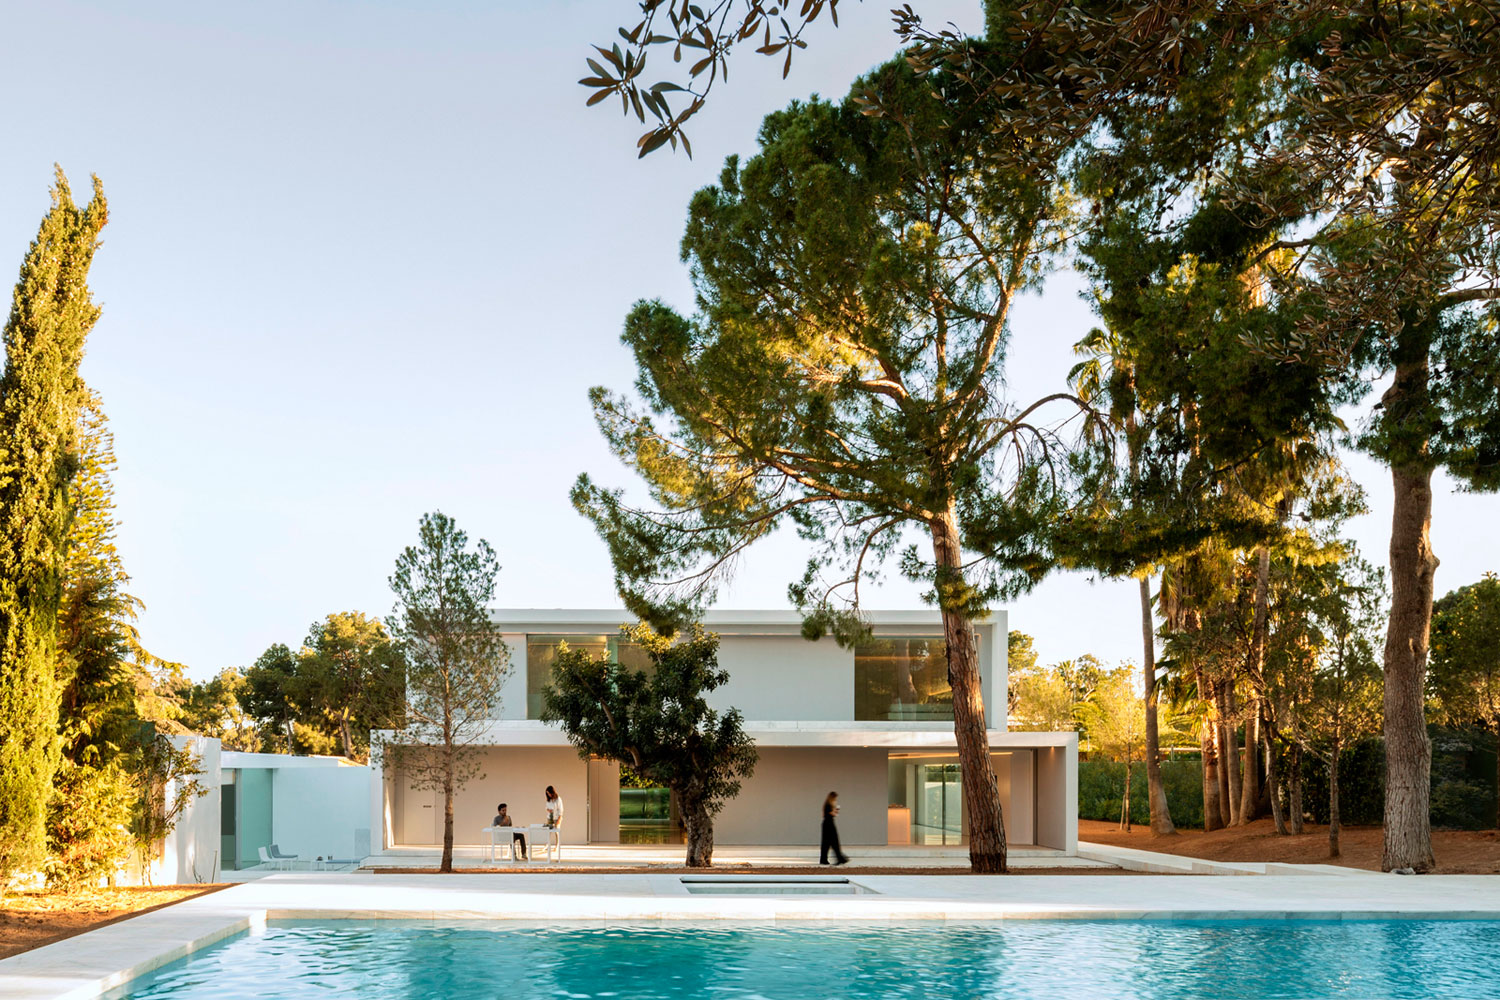 Fran Silvestre Arquitectos Design a House in a Pine Forest in Paterna, Spain